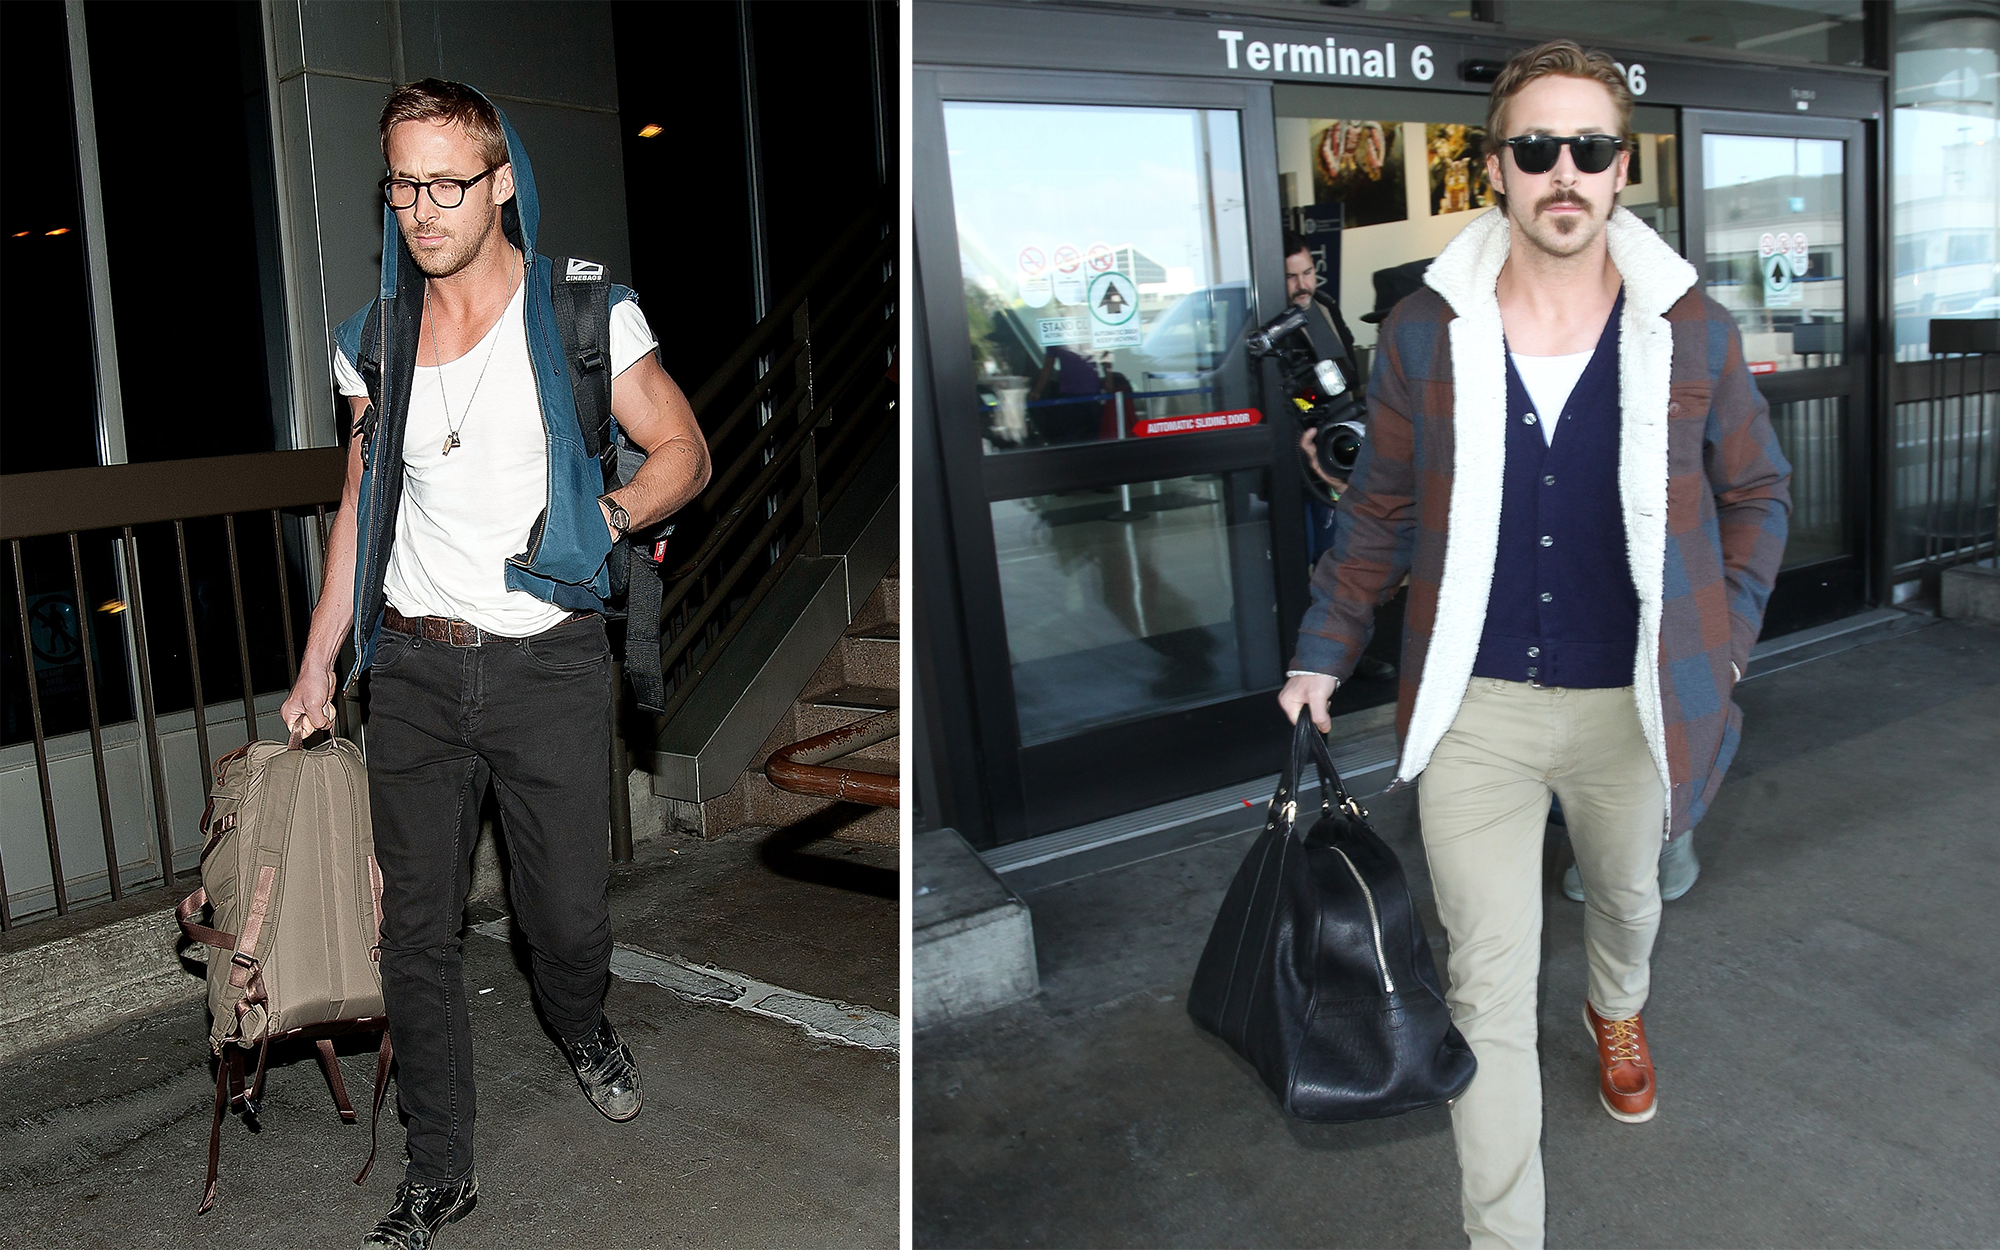 Celebrity Airport Style: Ryan Gosling